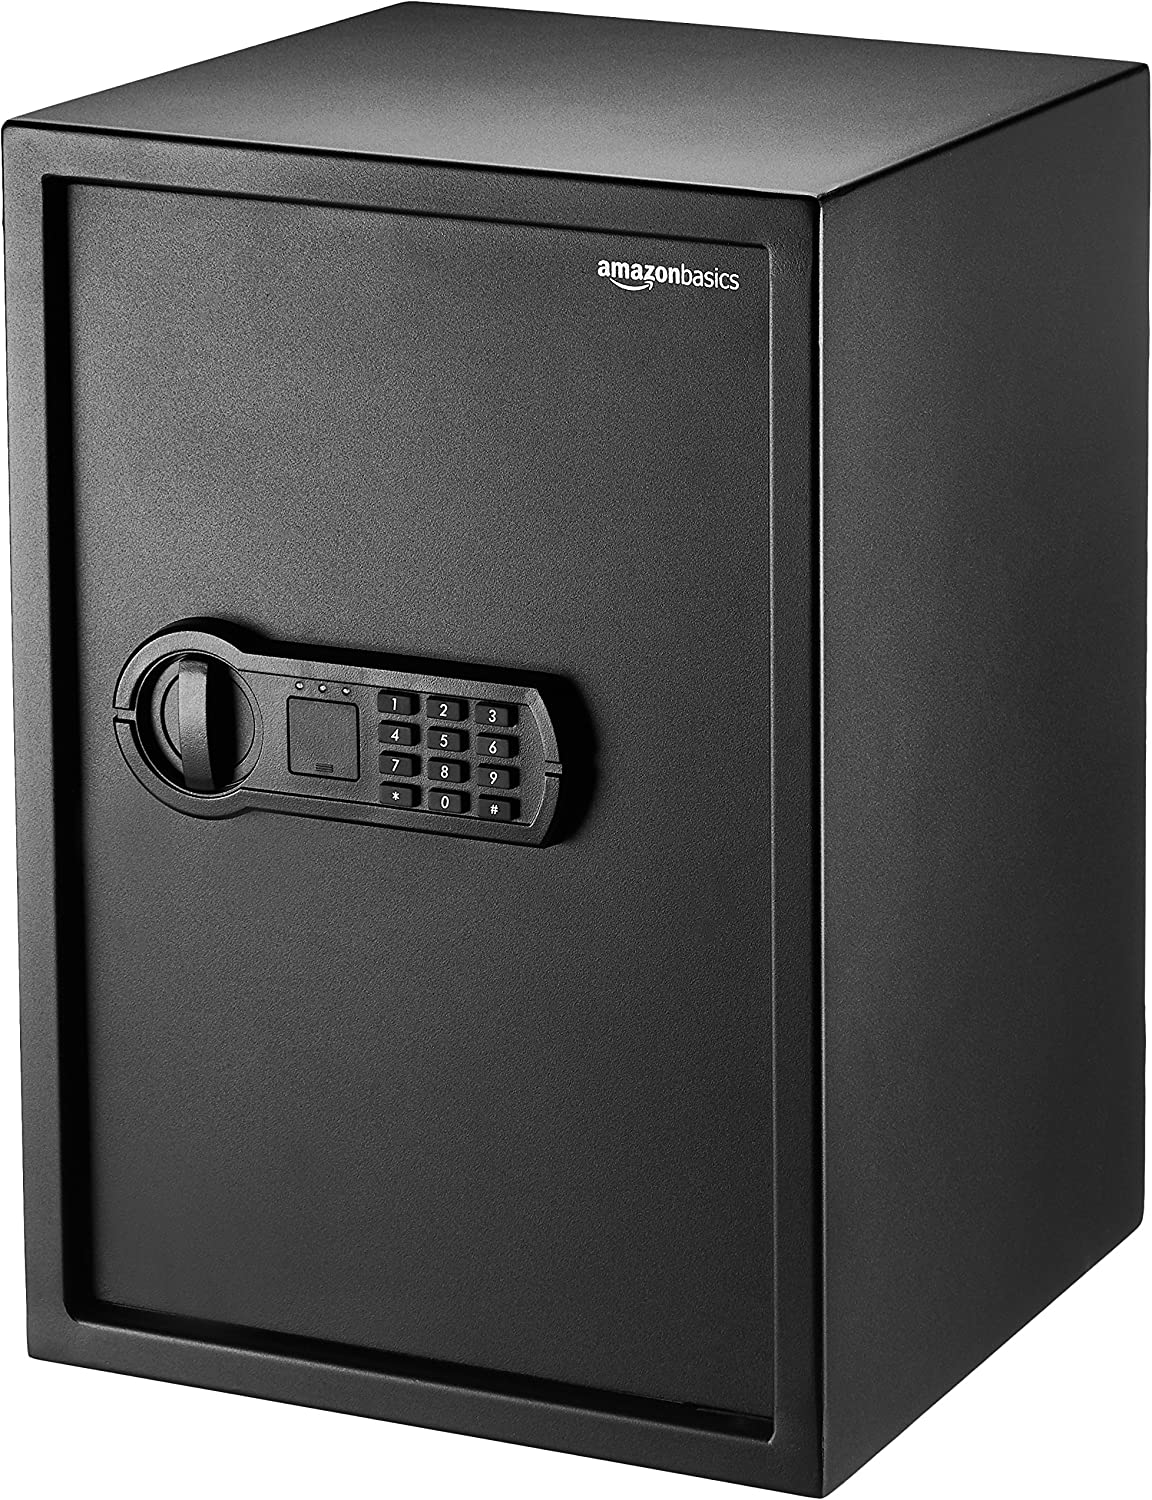 AmazonBasics Home Keypad Safe – 1.8 Cubic Feet, 13.8 x 13 x 19.7 Inches, Black